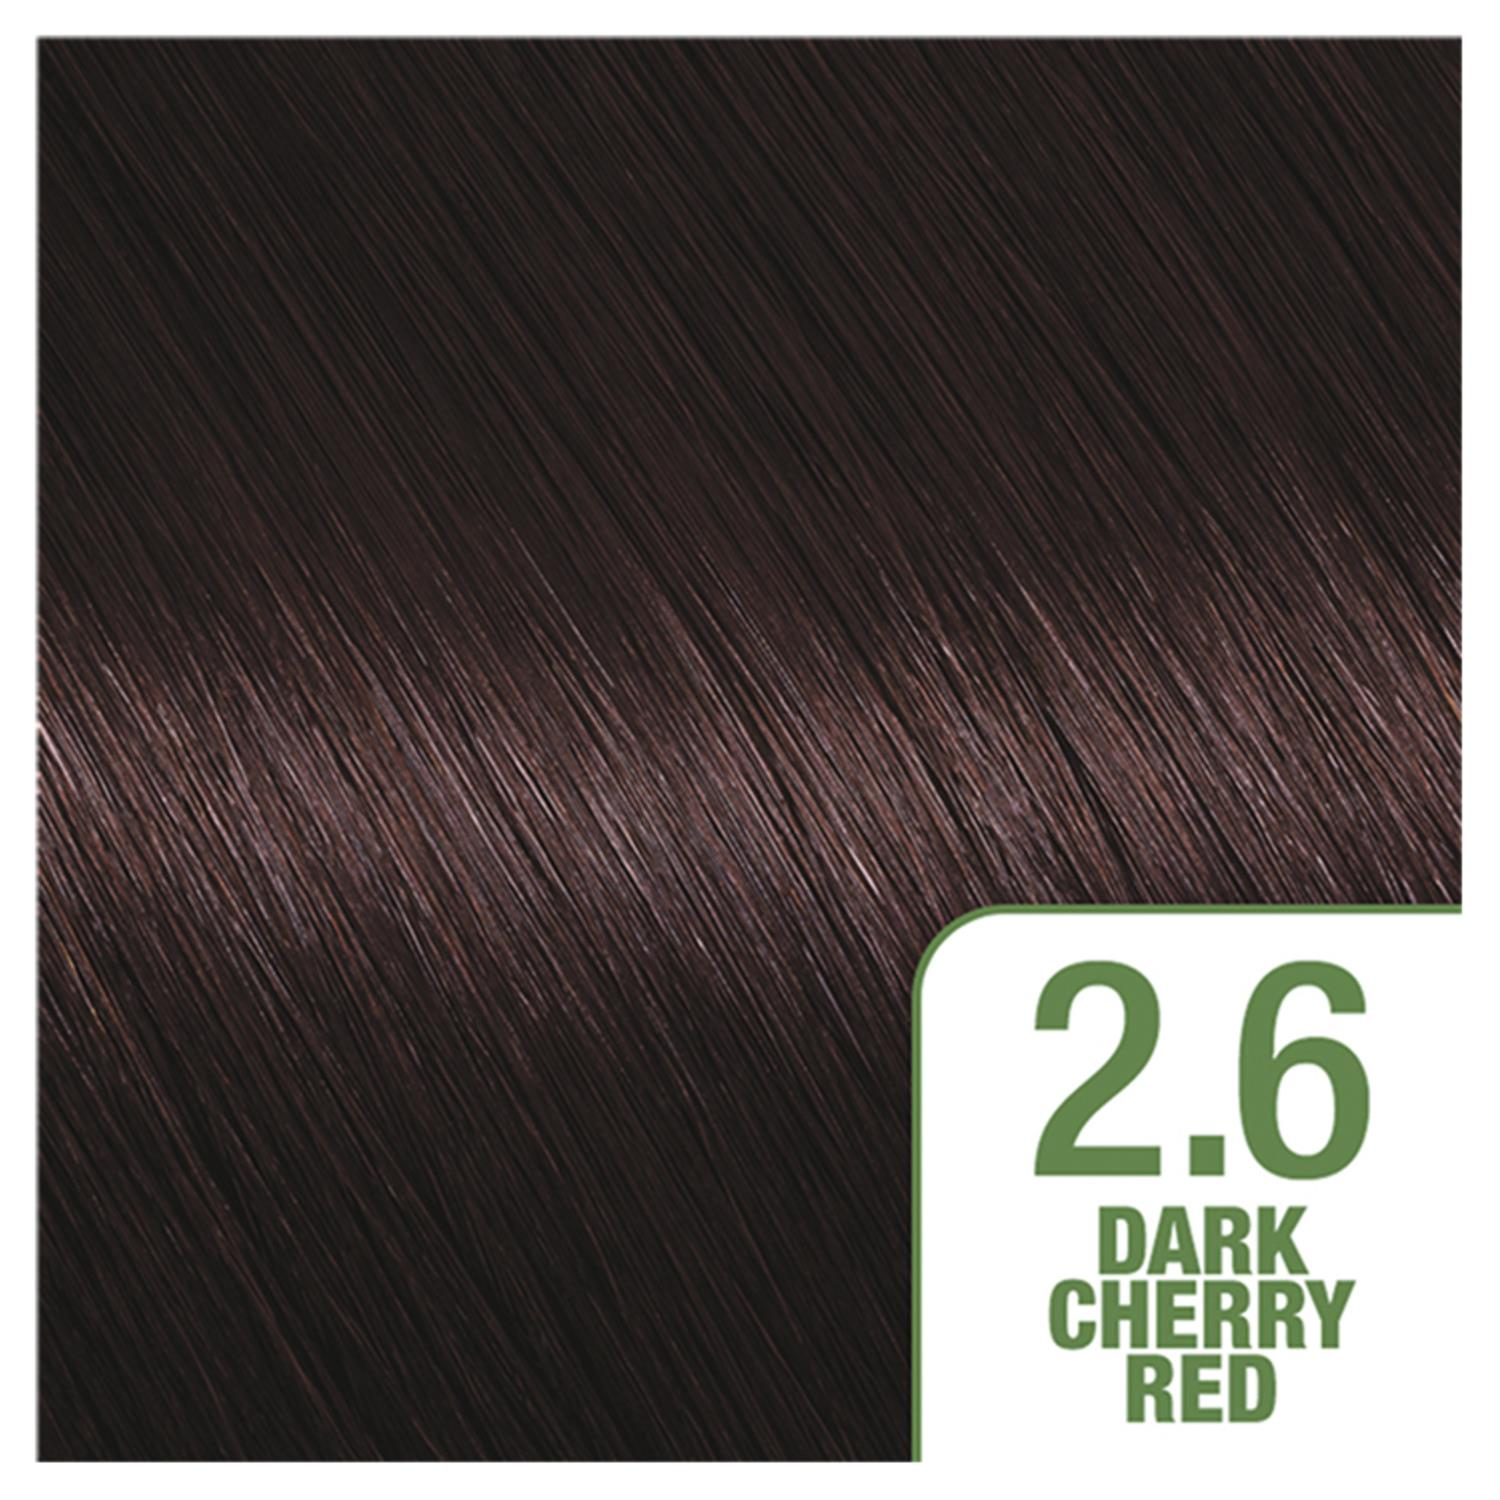 thumbnail 26 - 3 Pack Garnier Nutrisse Permanent Hair Dye With Different Shades